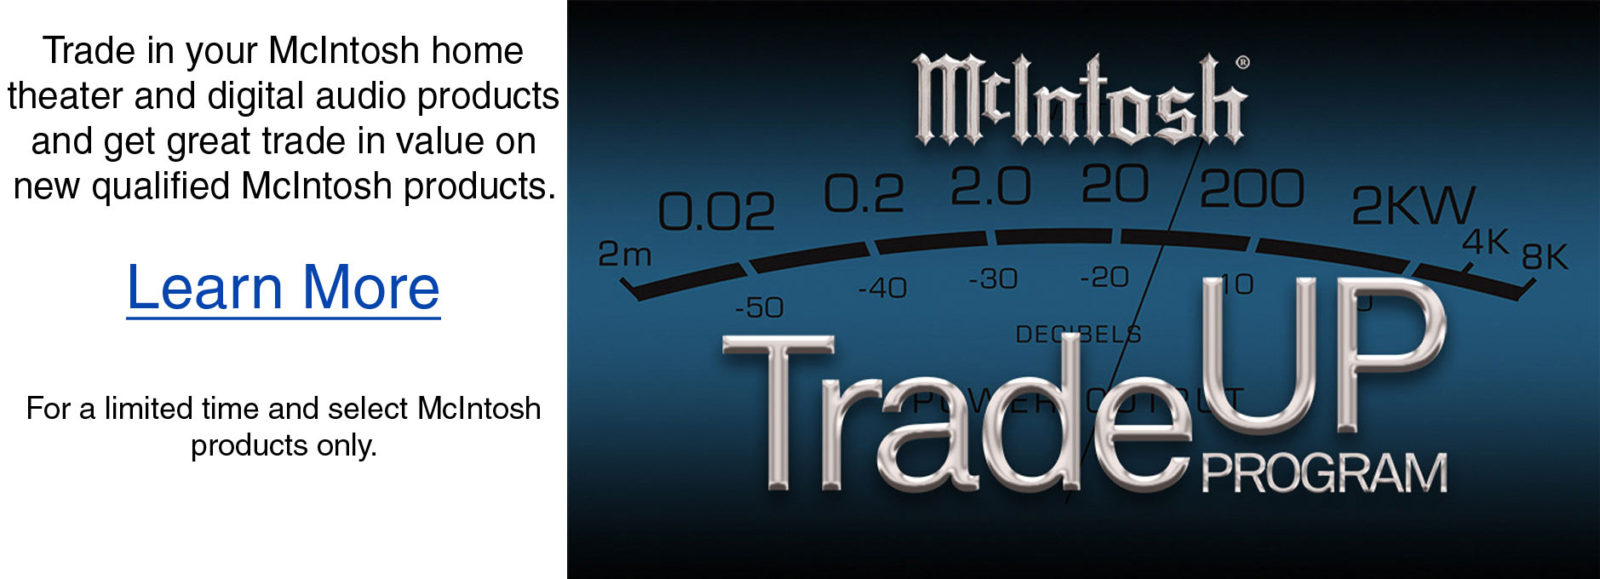 Trade in your McIntosh home theater and digital audio products and get great trade in value on new qualified McIntosh products.